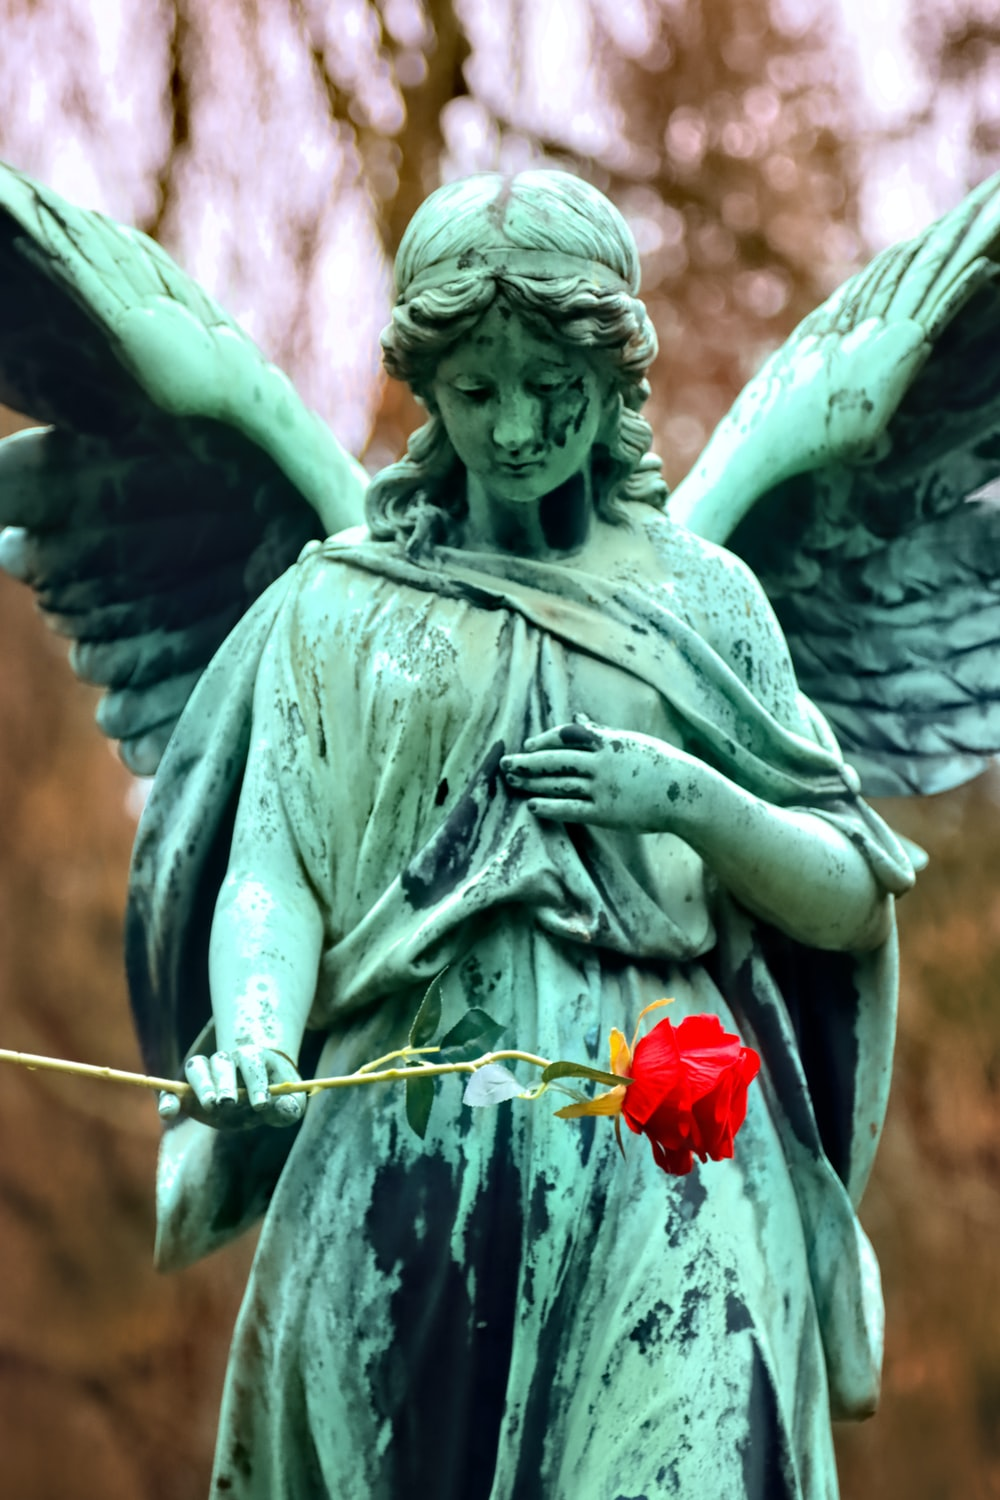 man holding red rose statue